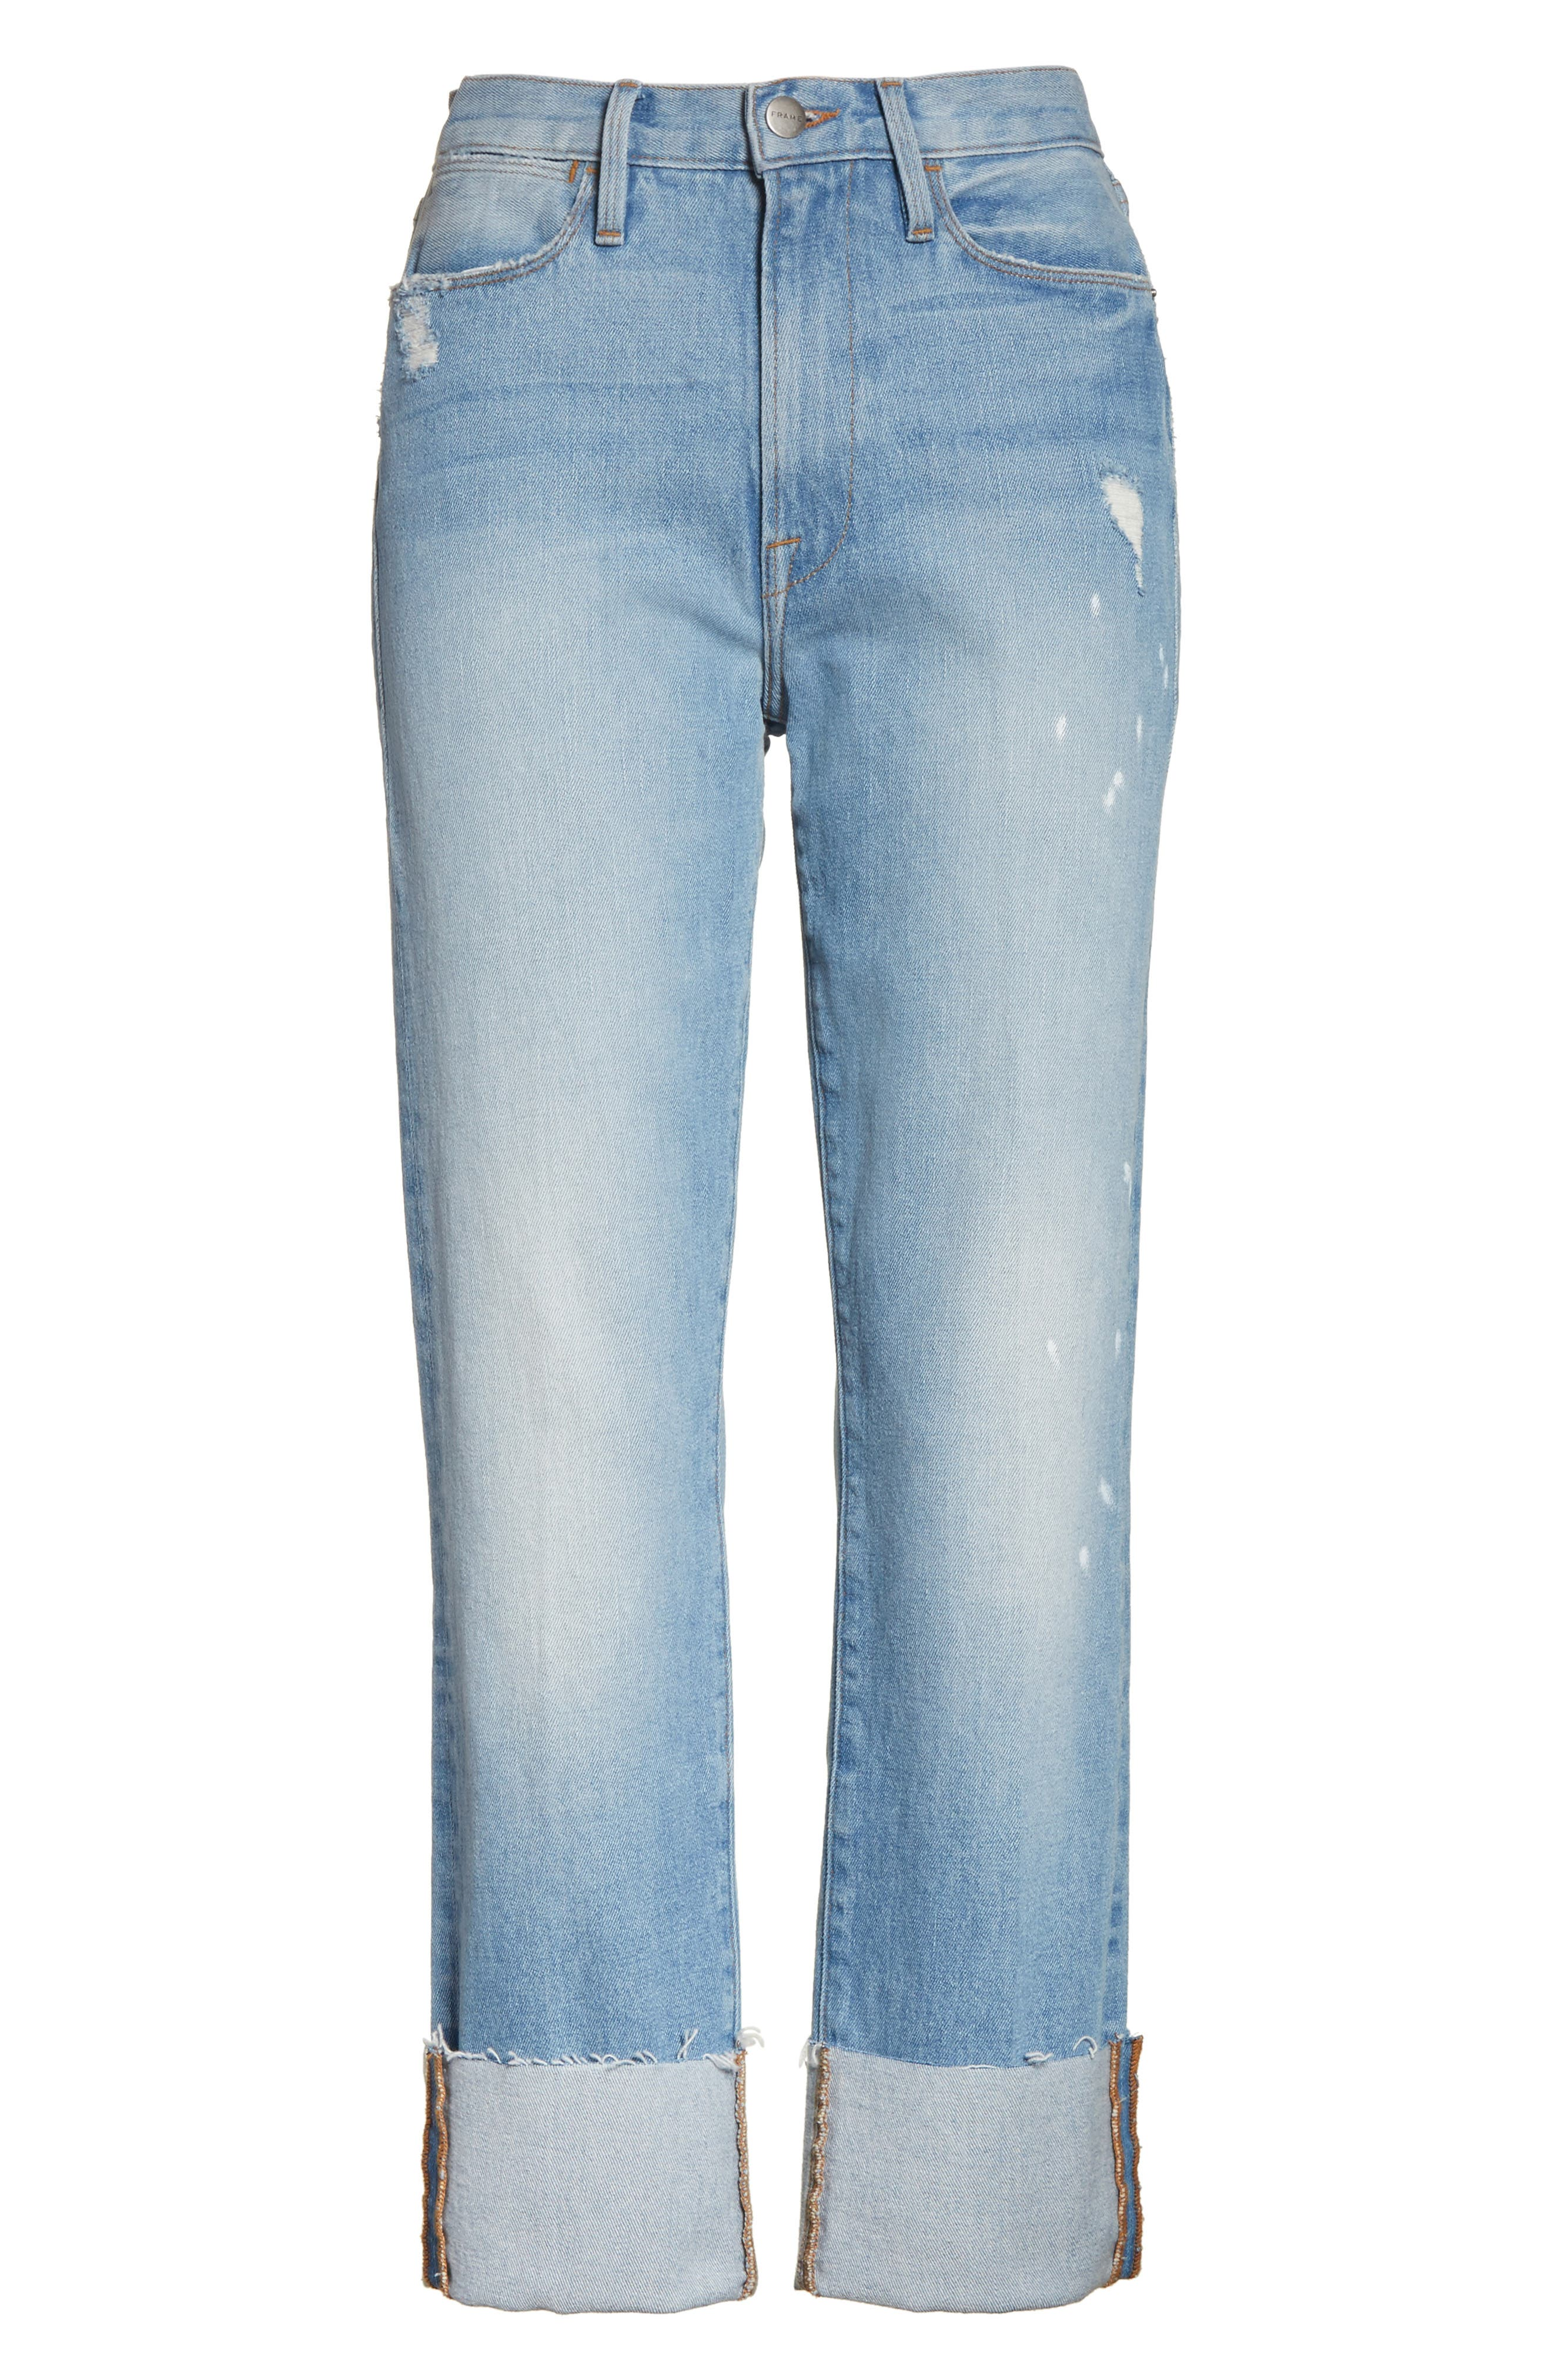 Le High Straight Leg Cuffed Jeans,                             Alternate thumbnail 6, color,                             450